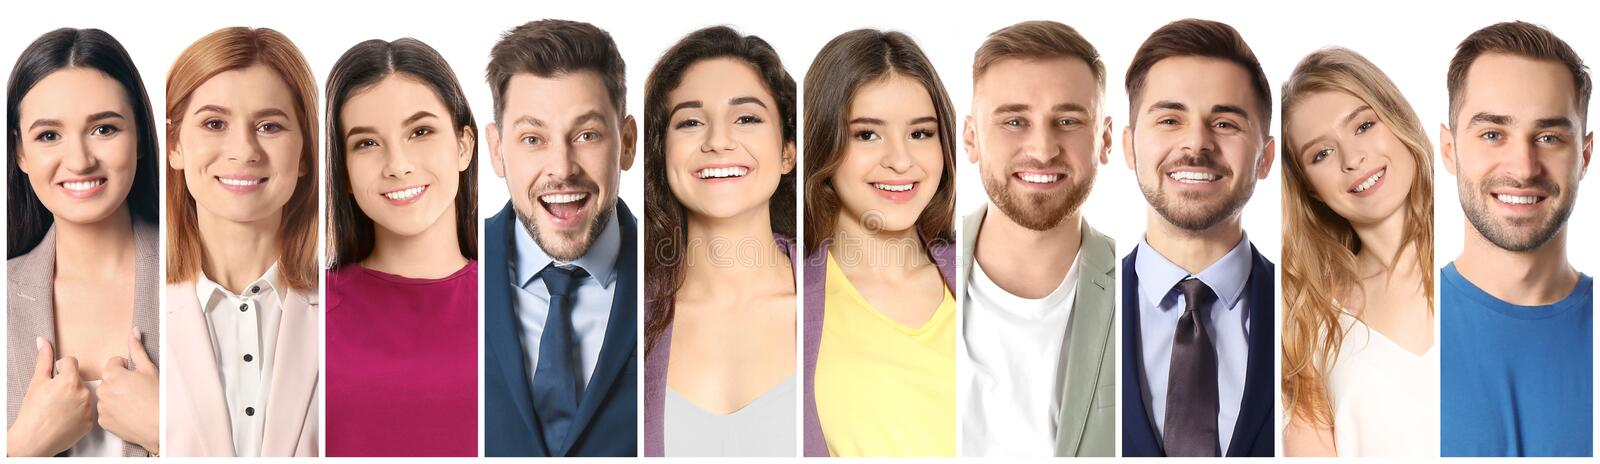 Collage of smiling people on white background royalty free stock photo